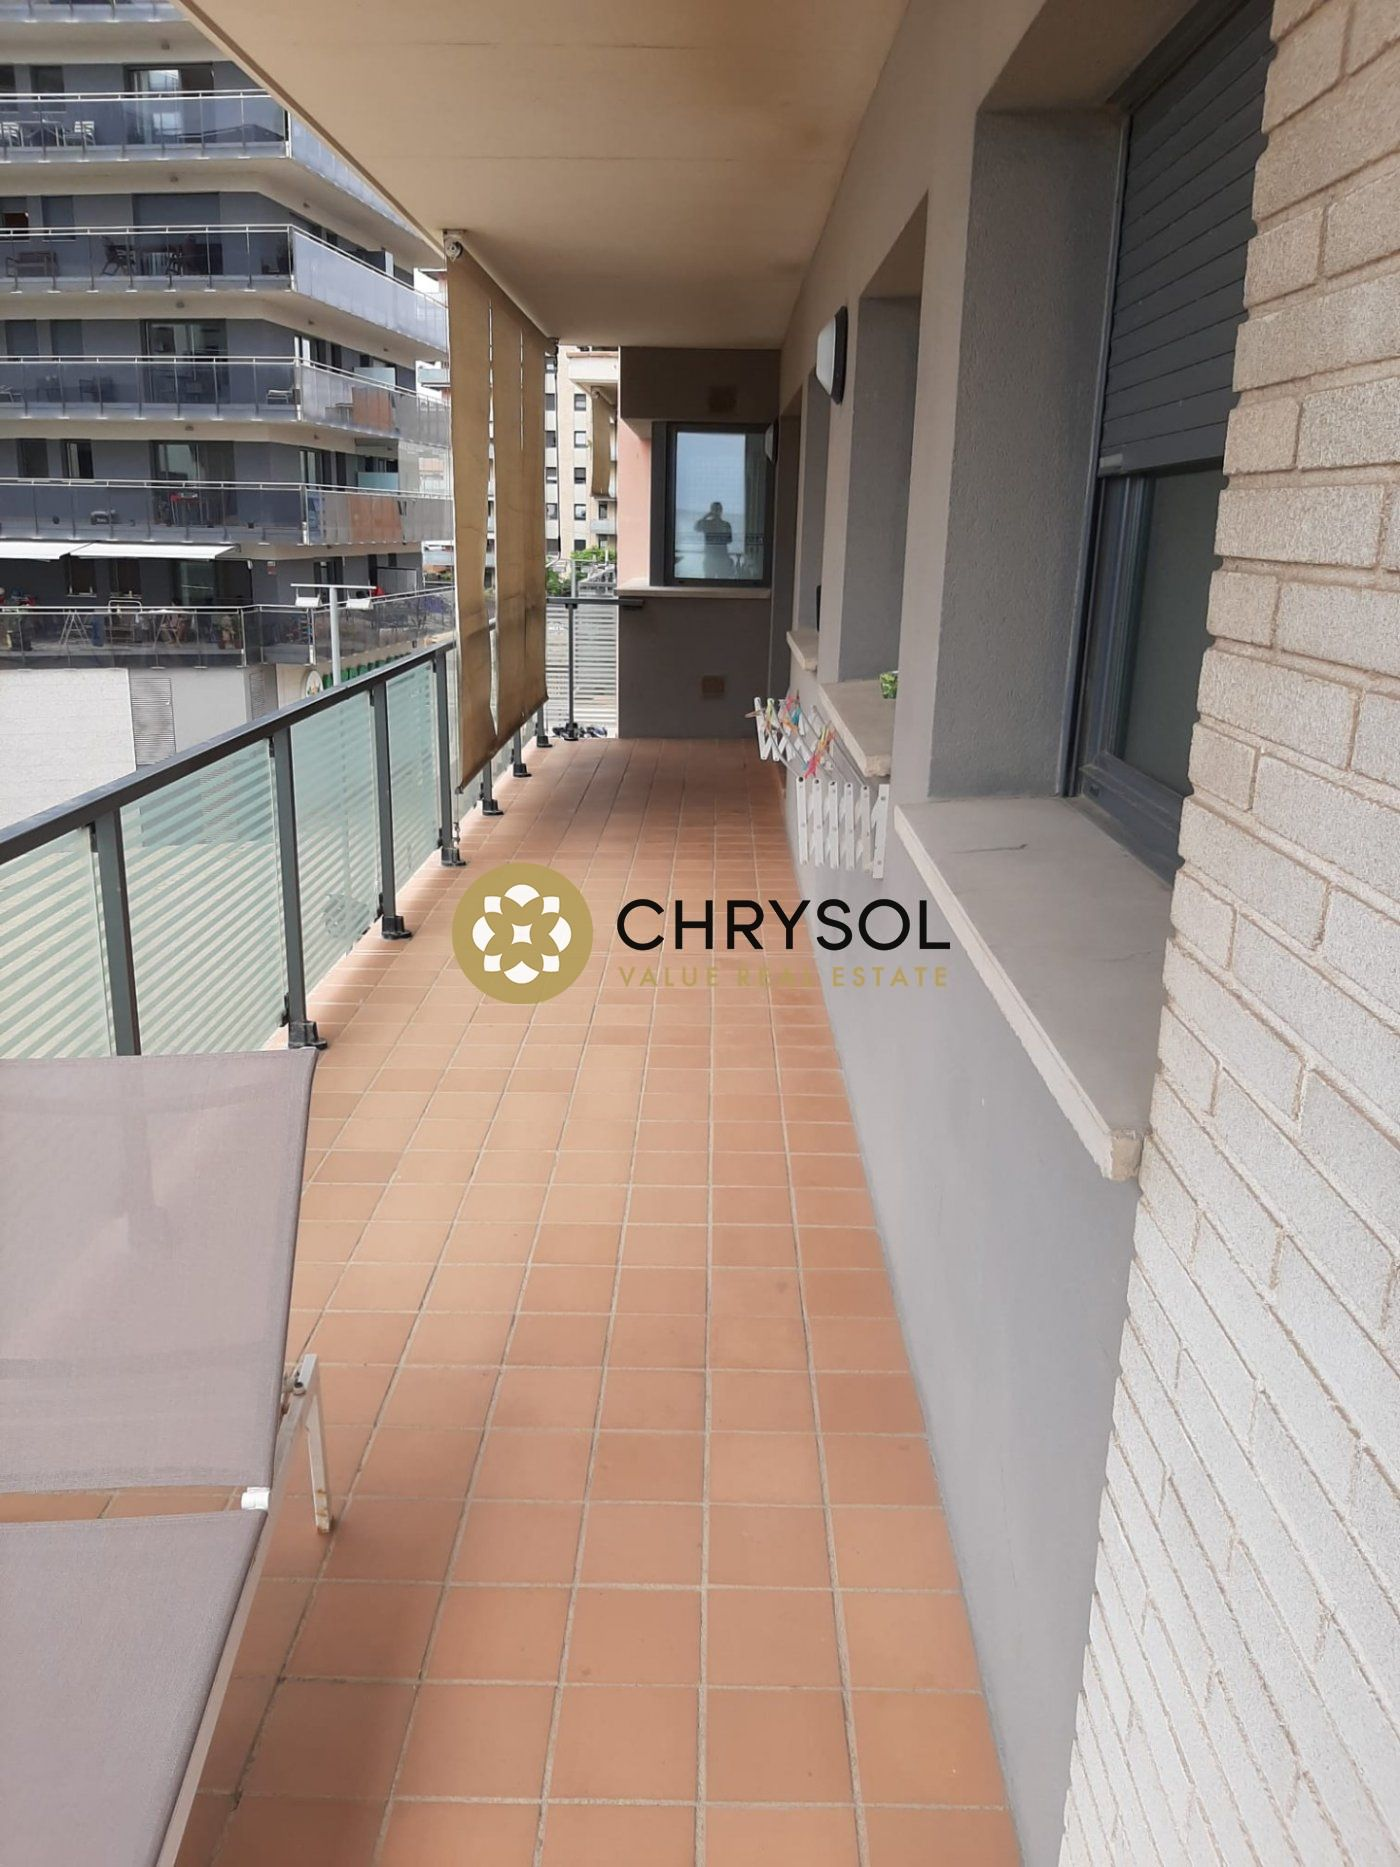 Fotogalería - 19 - Chrysol Value